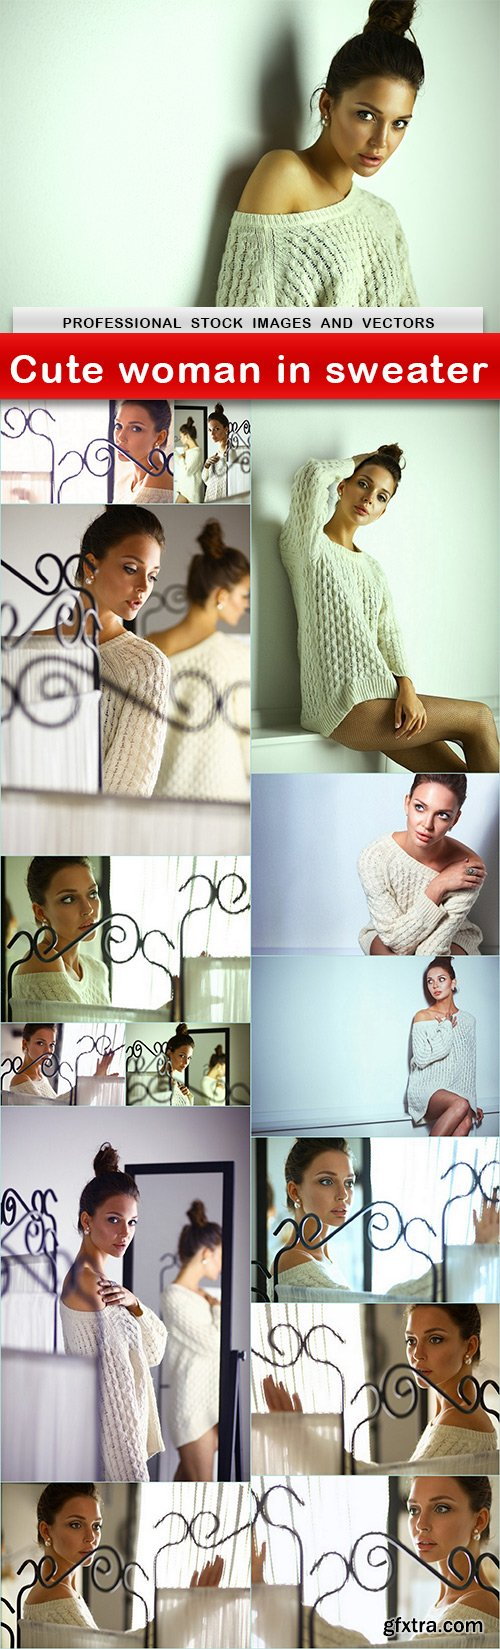 Cute woman in sweater - 15 UHQ JPEG